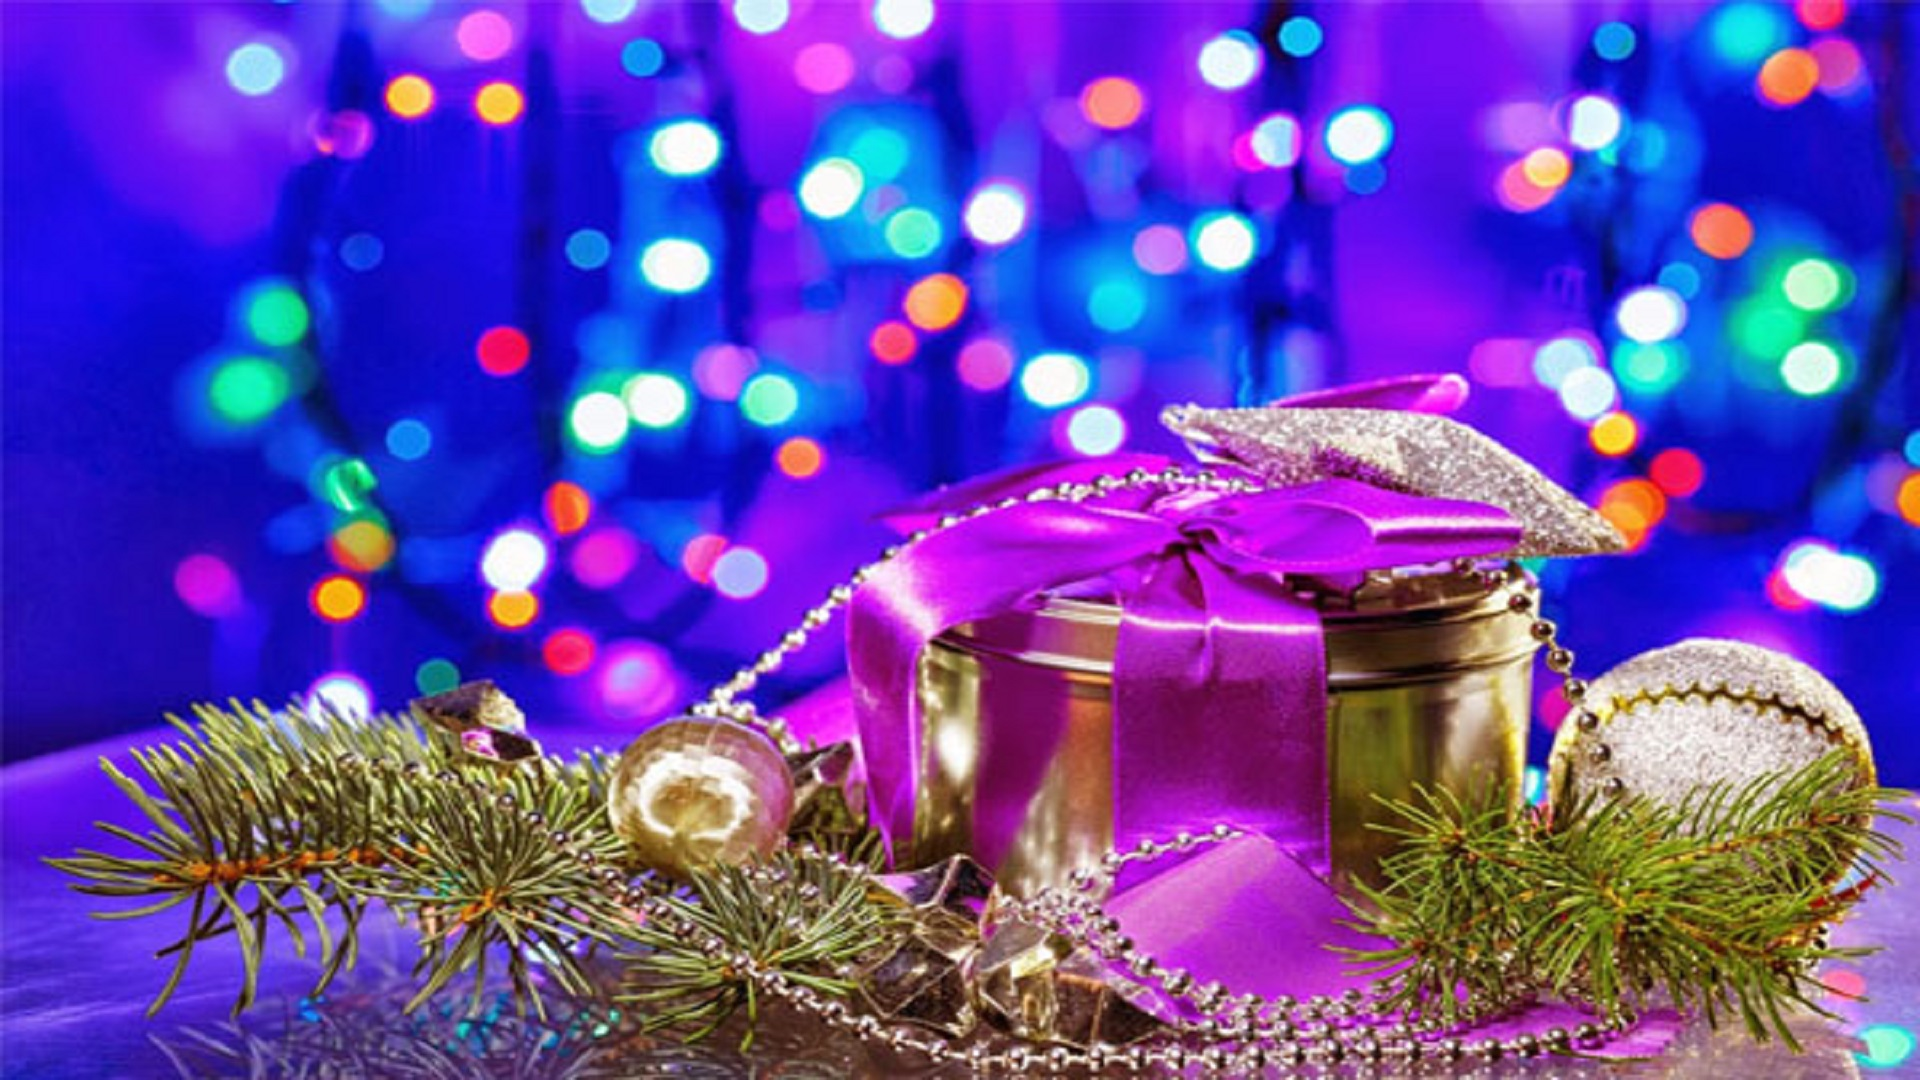 Top 10 Merry Christmas Free Hd Wallpapers For